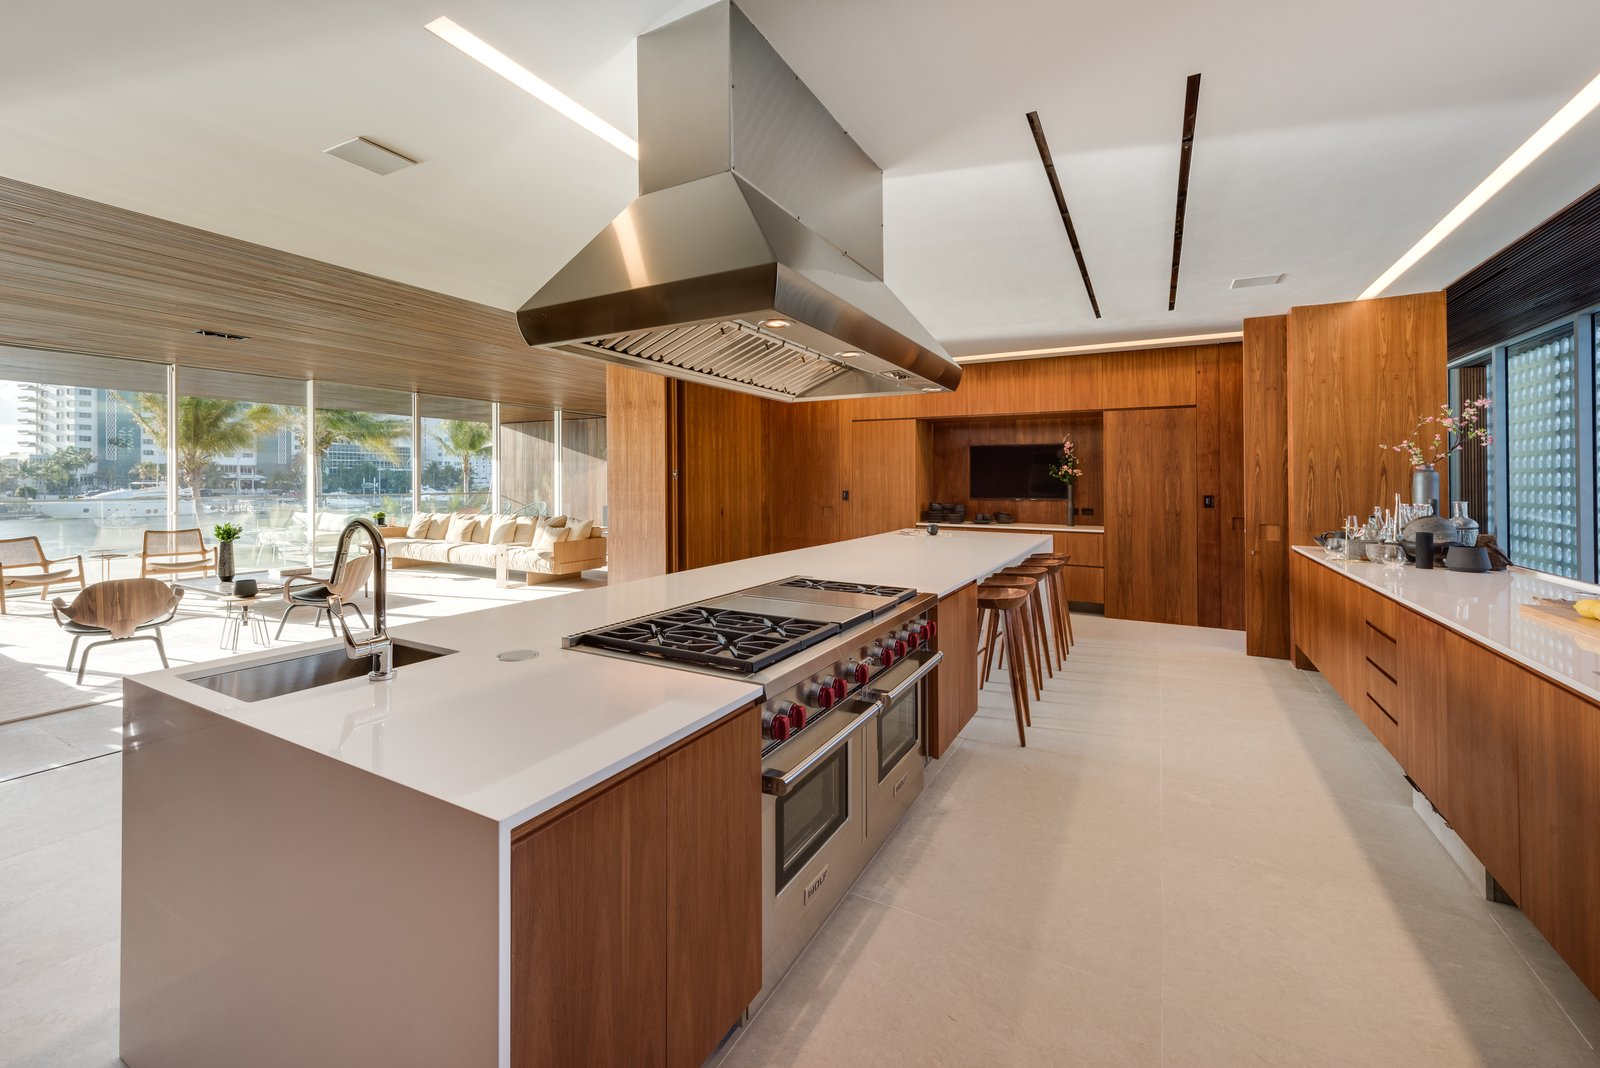 Trees, Gardens, Concrete, Shrubs, Chair, Sofa, Recessed, Limestone, and Kitchen Spacious and bright, the kitchen features a large island with seating and opens up to the living area.  Best Kitchen Chair Photos from Pine Tree North